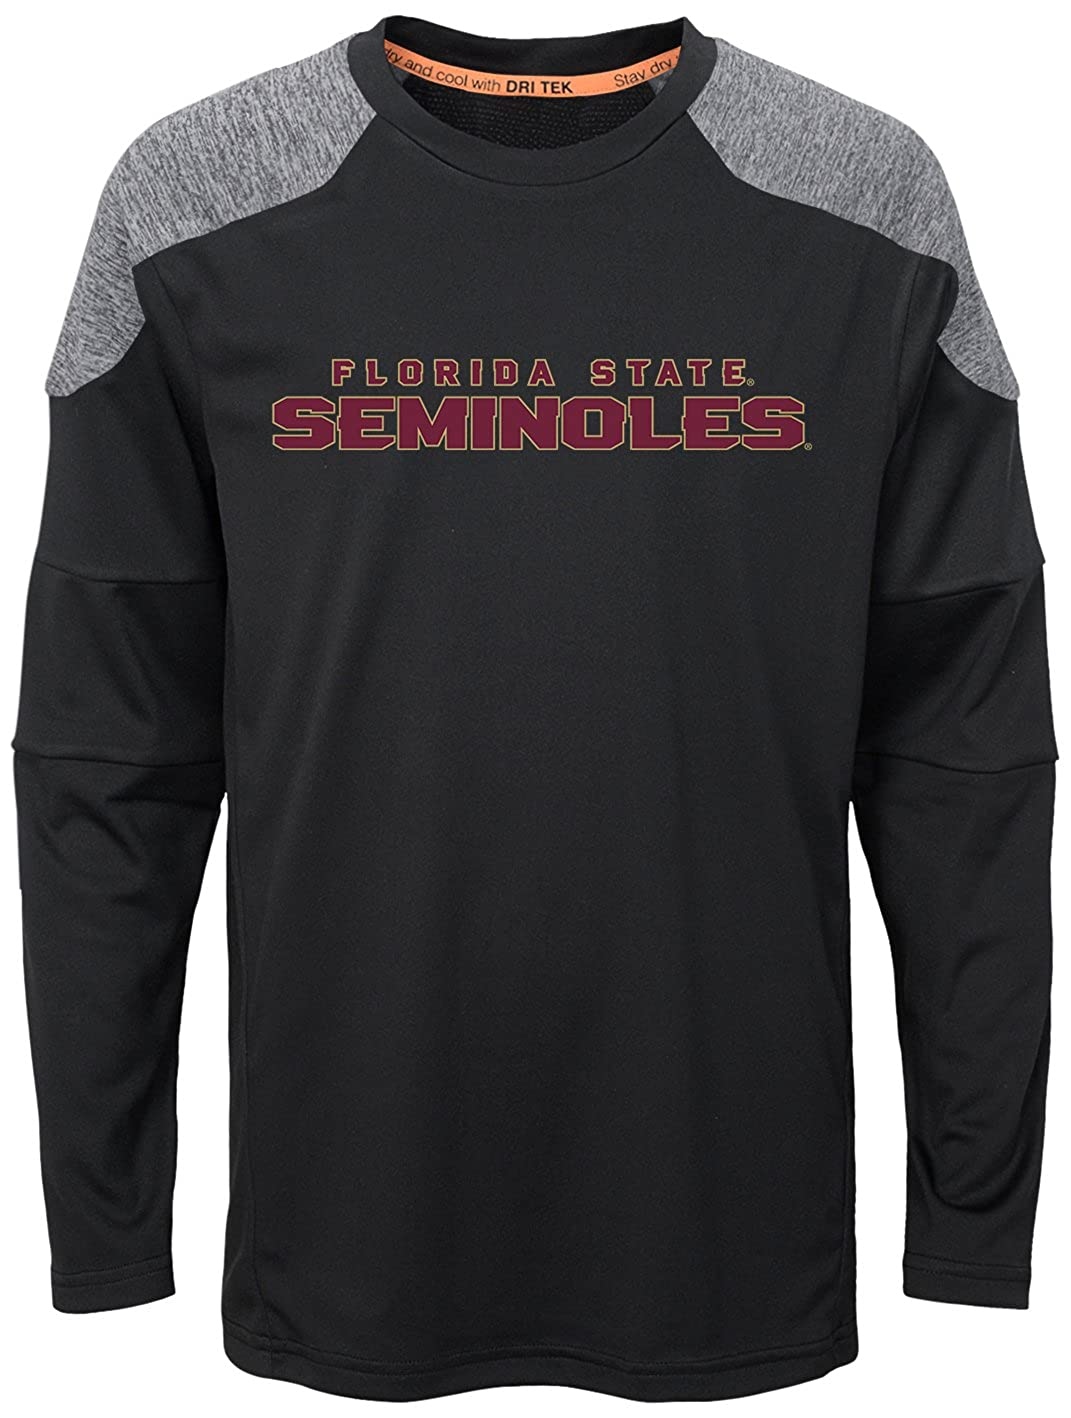 Youth X-Large Team Color NCAA Florida State Seminoles Boys Outerstuff Gamma Long Sleeve Performance Tee 16-18